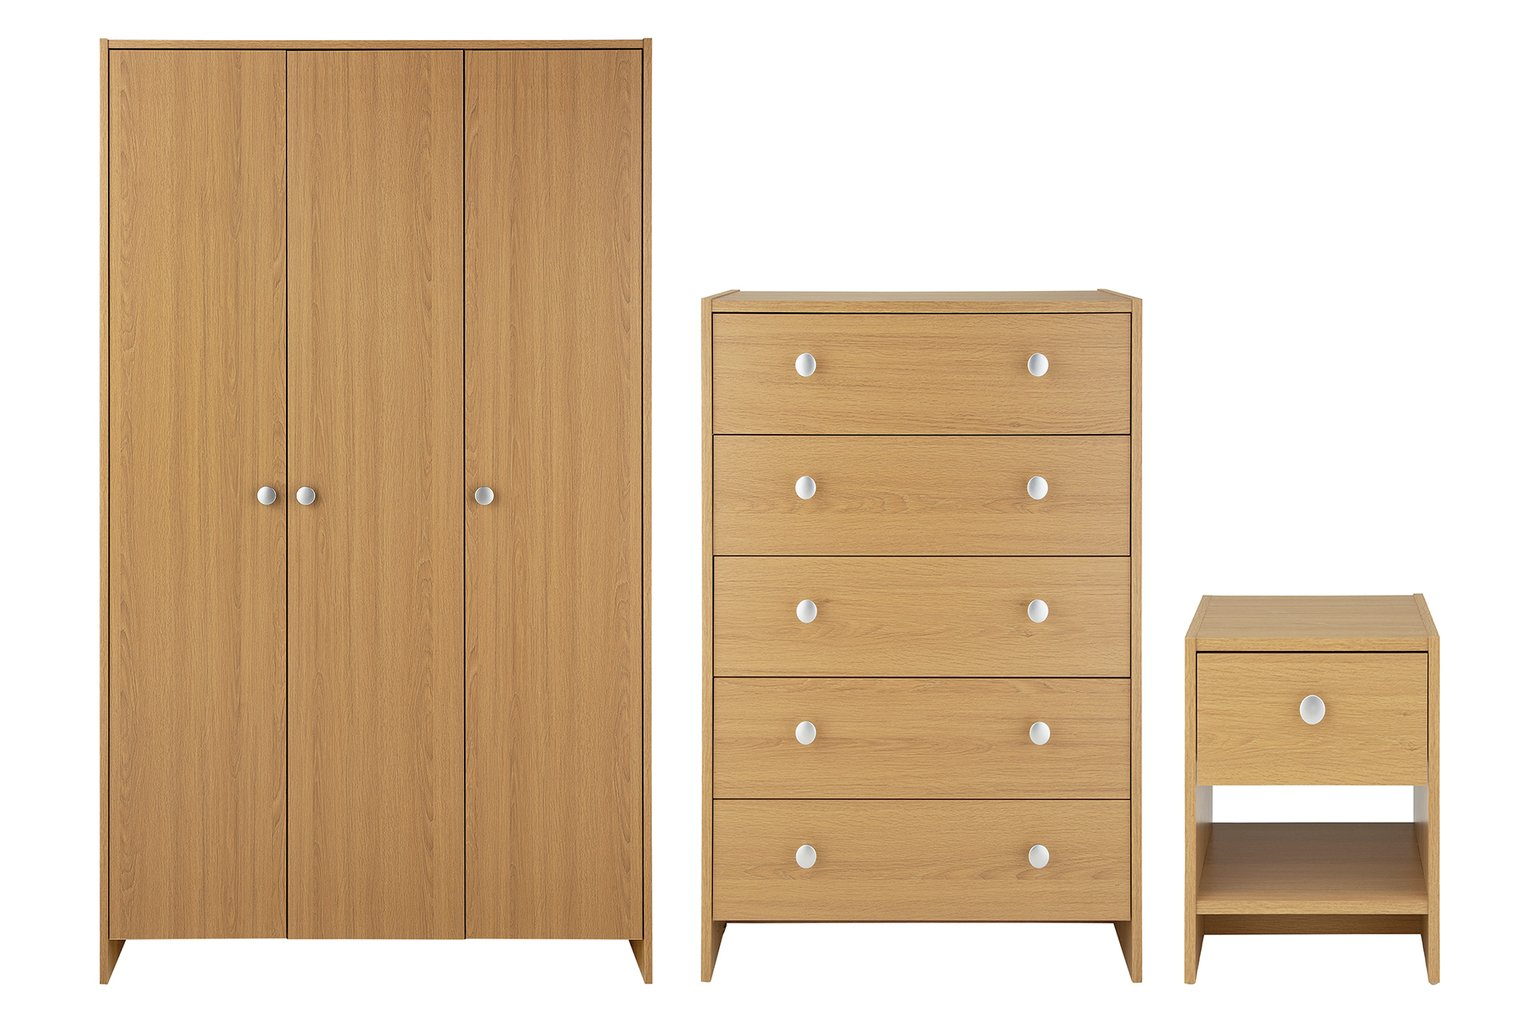 Argos Home Seville 3 Piece 3 Door Wardrobe Set - Oak Effect